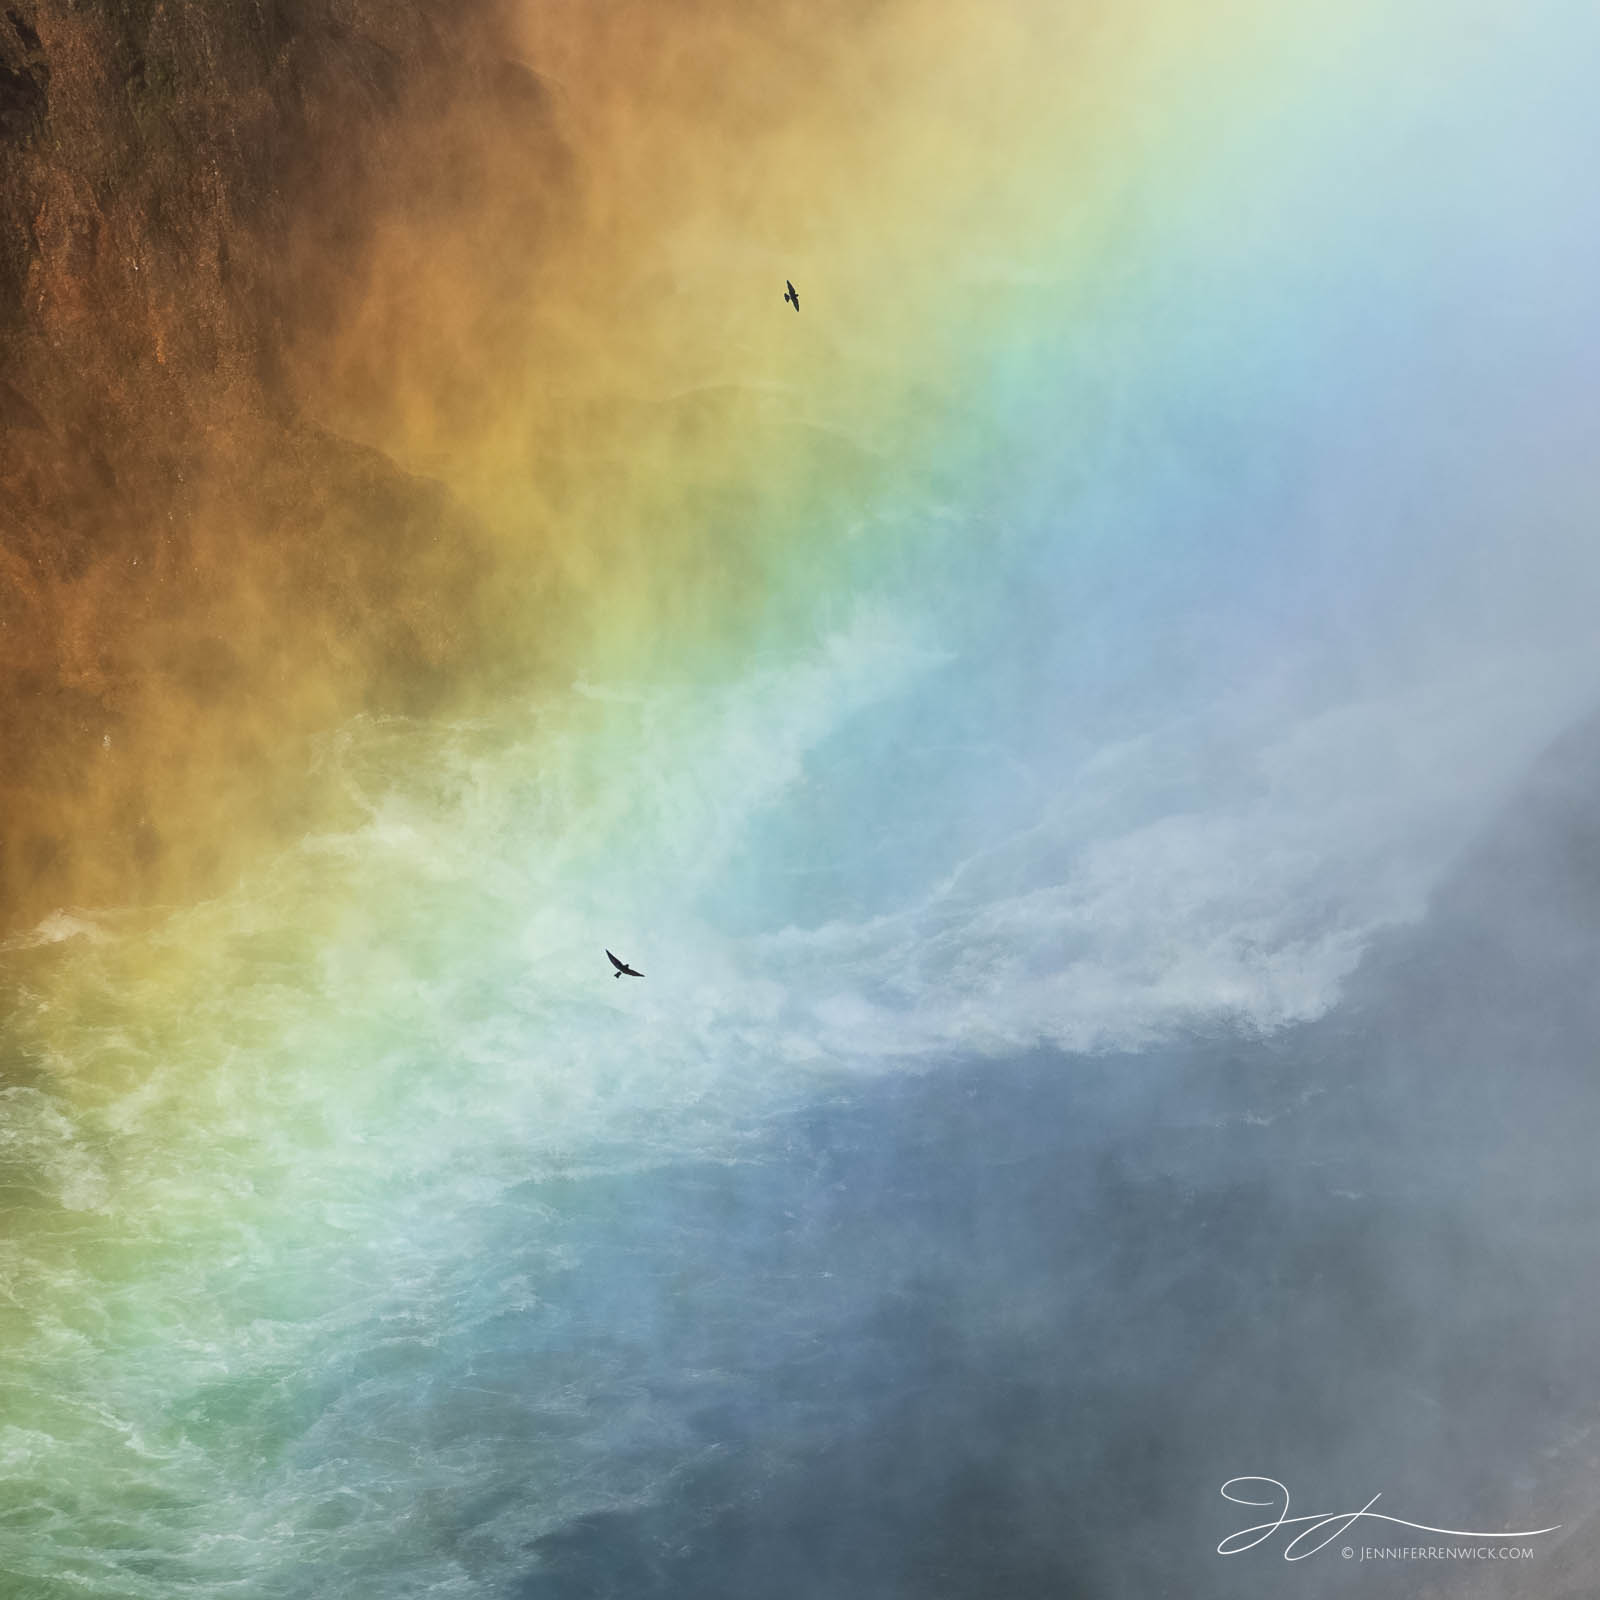 Lower Falls, Grand Canyon of the Yellowstone, Wyoming, Yellowstone national park, small scene, mist, waterfall, landscape, rainbow, violet green swallows, birds, small scene, photo